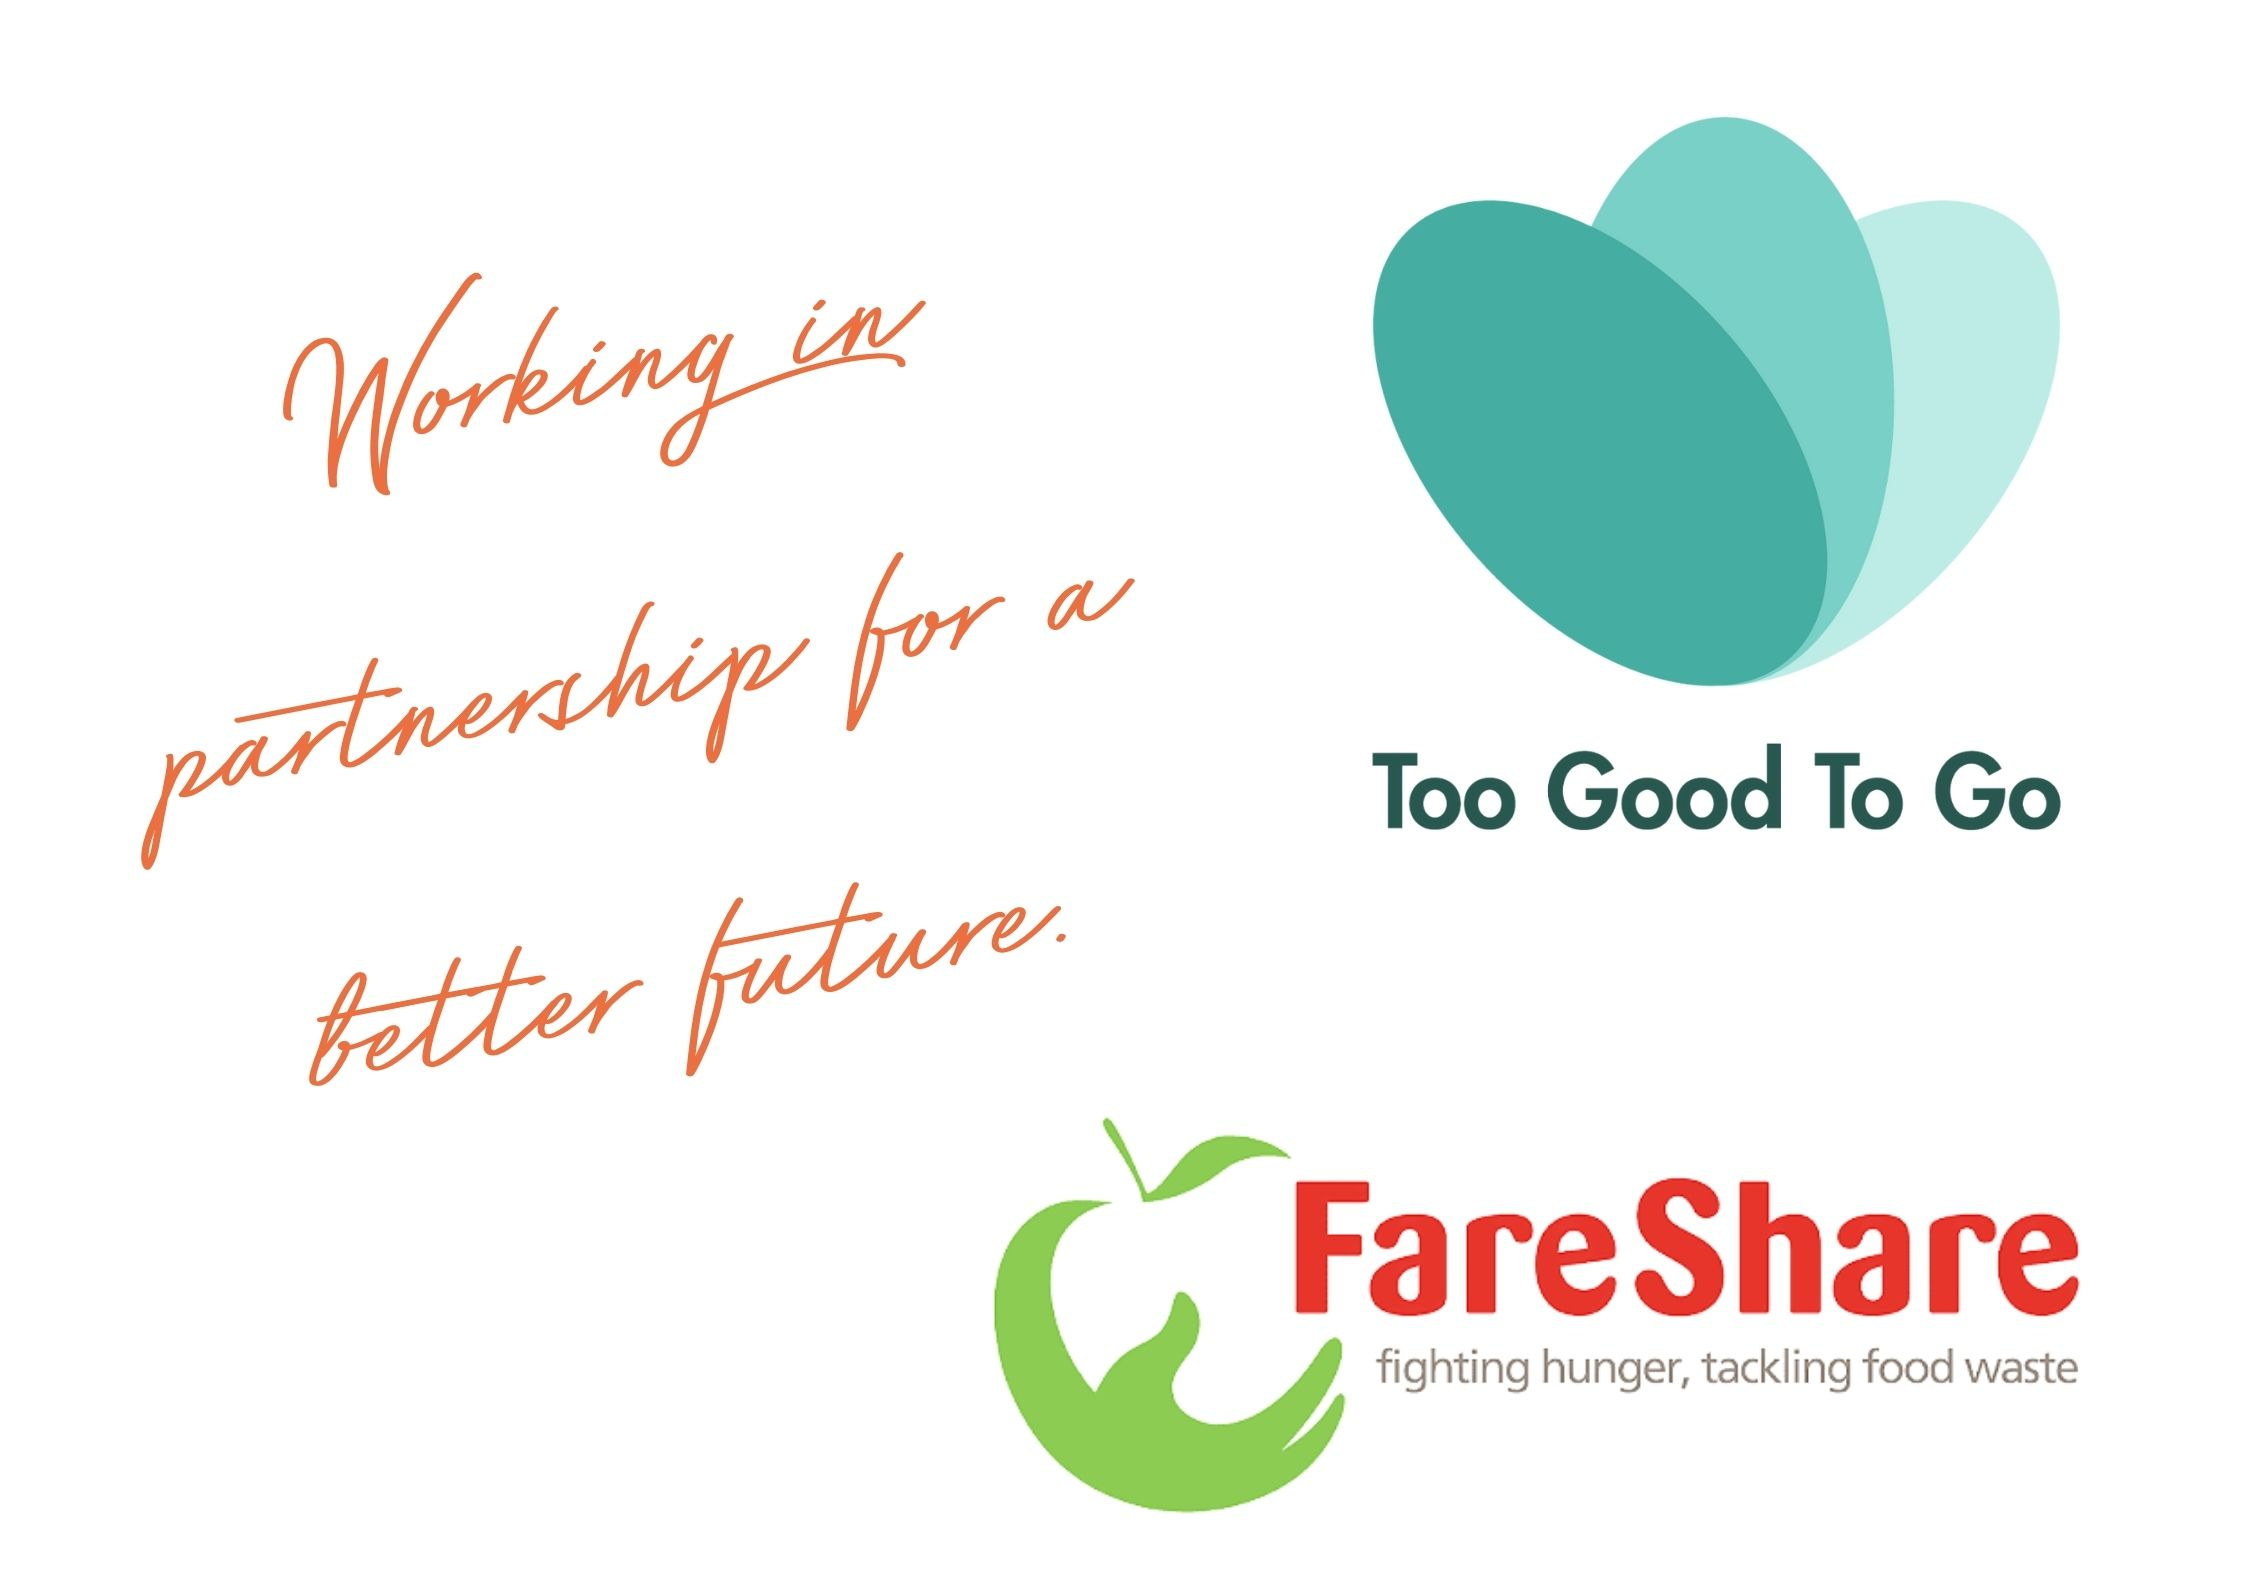 Working in Partnership for a better future